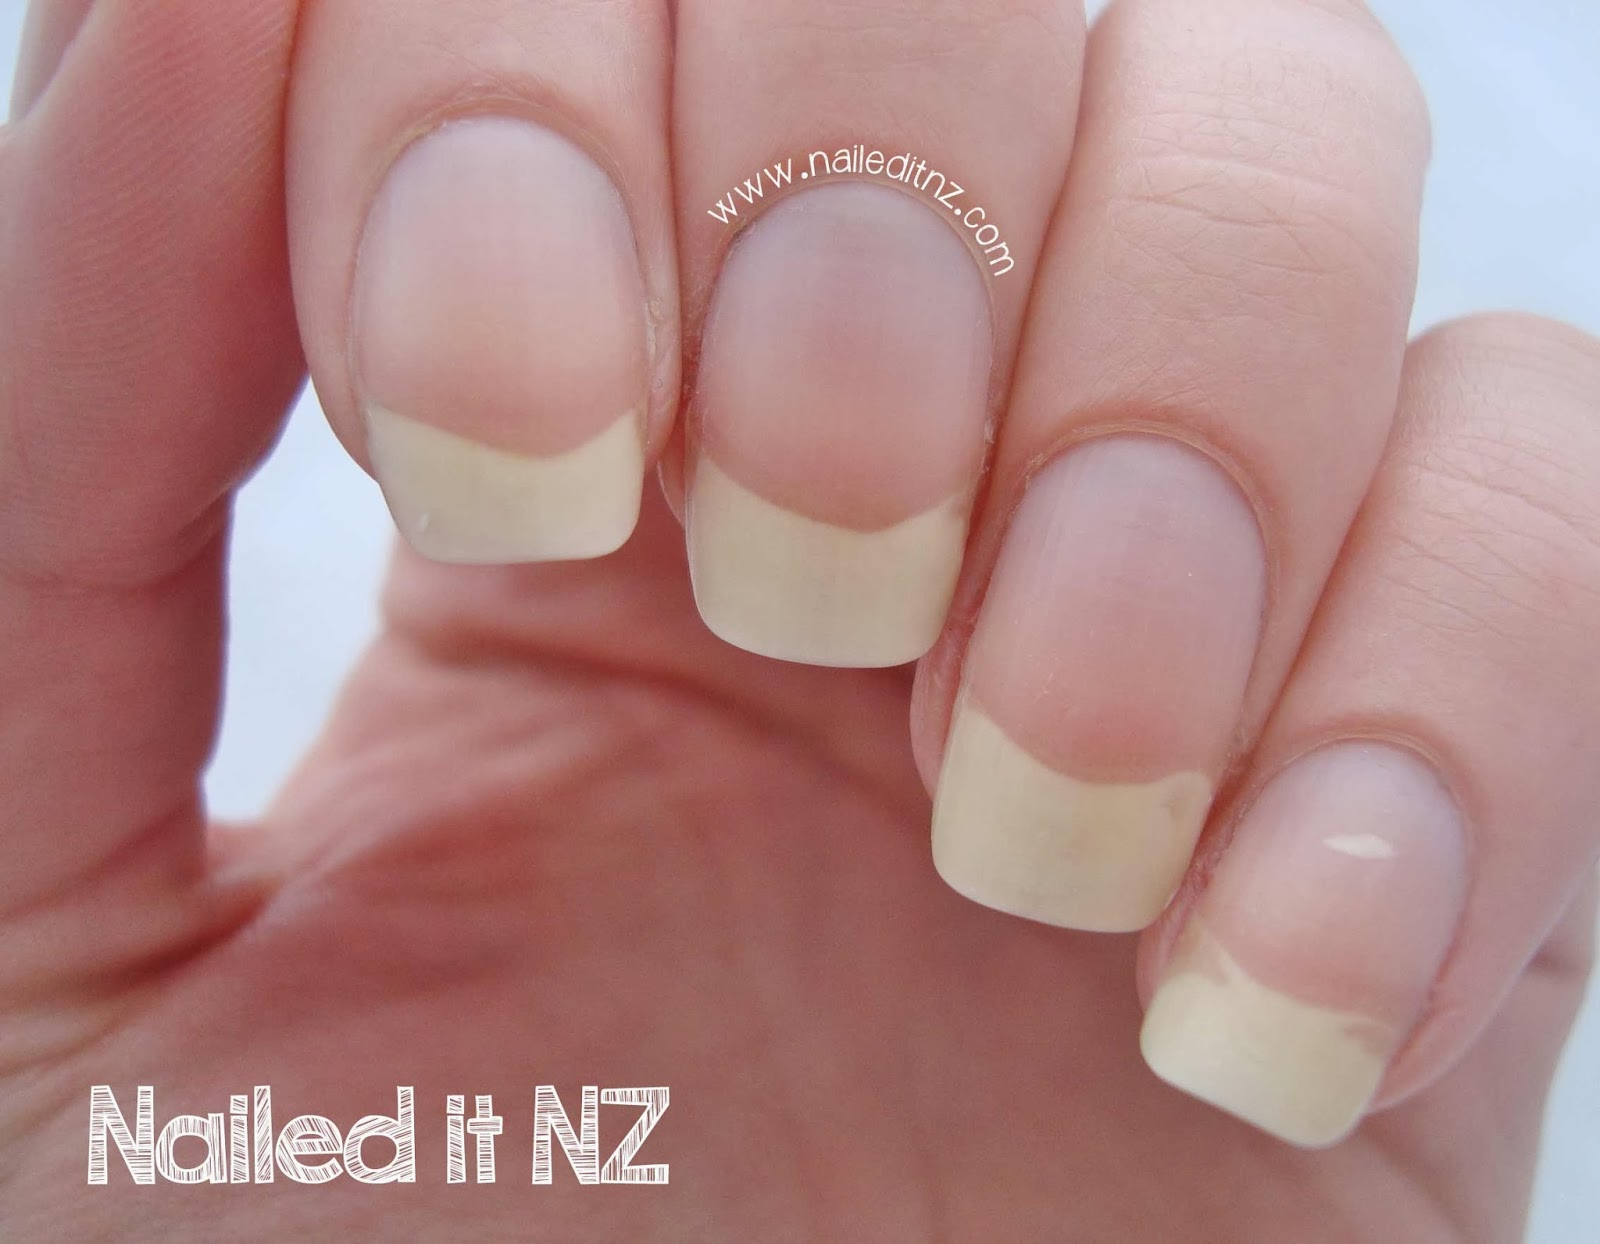 Nailed It NZ: Nail Polish Stained My Nails - How To Fix Them!